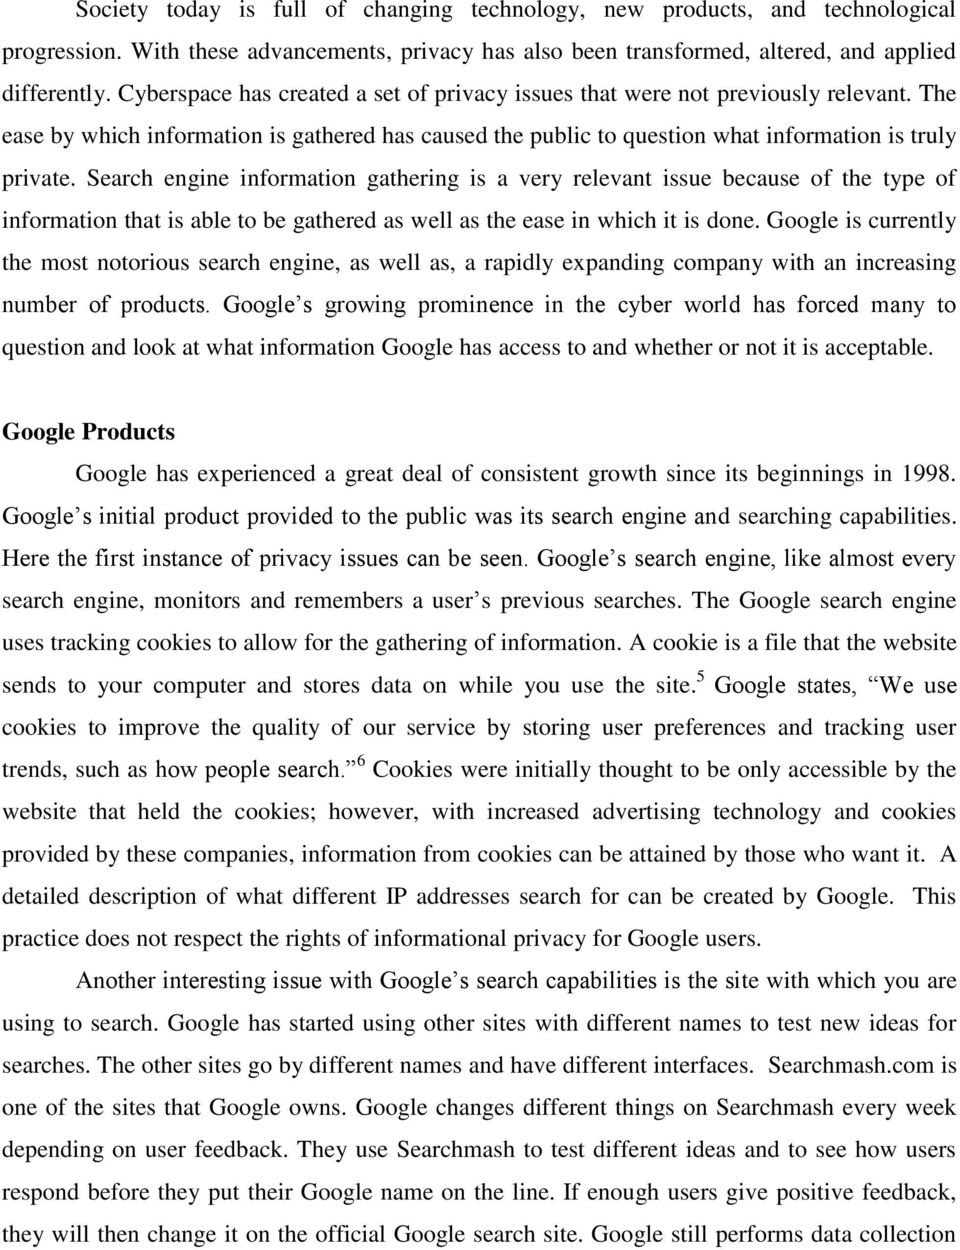 Google: Trust, Choice, and Privacy - PDF